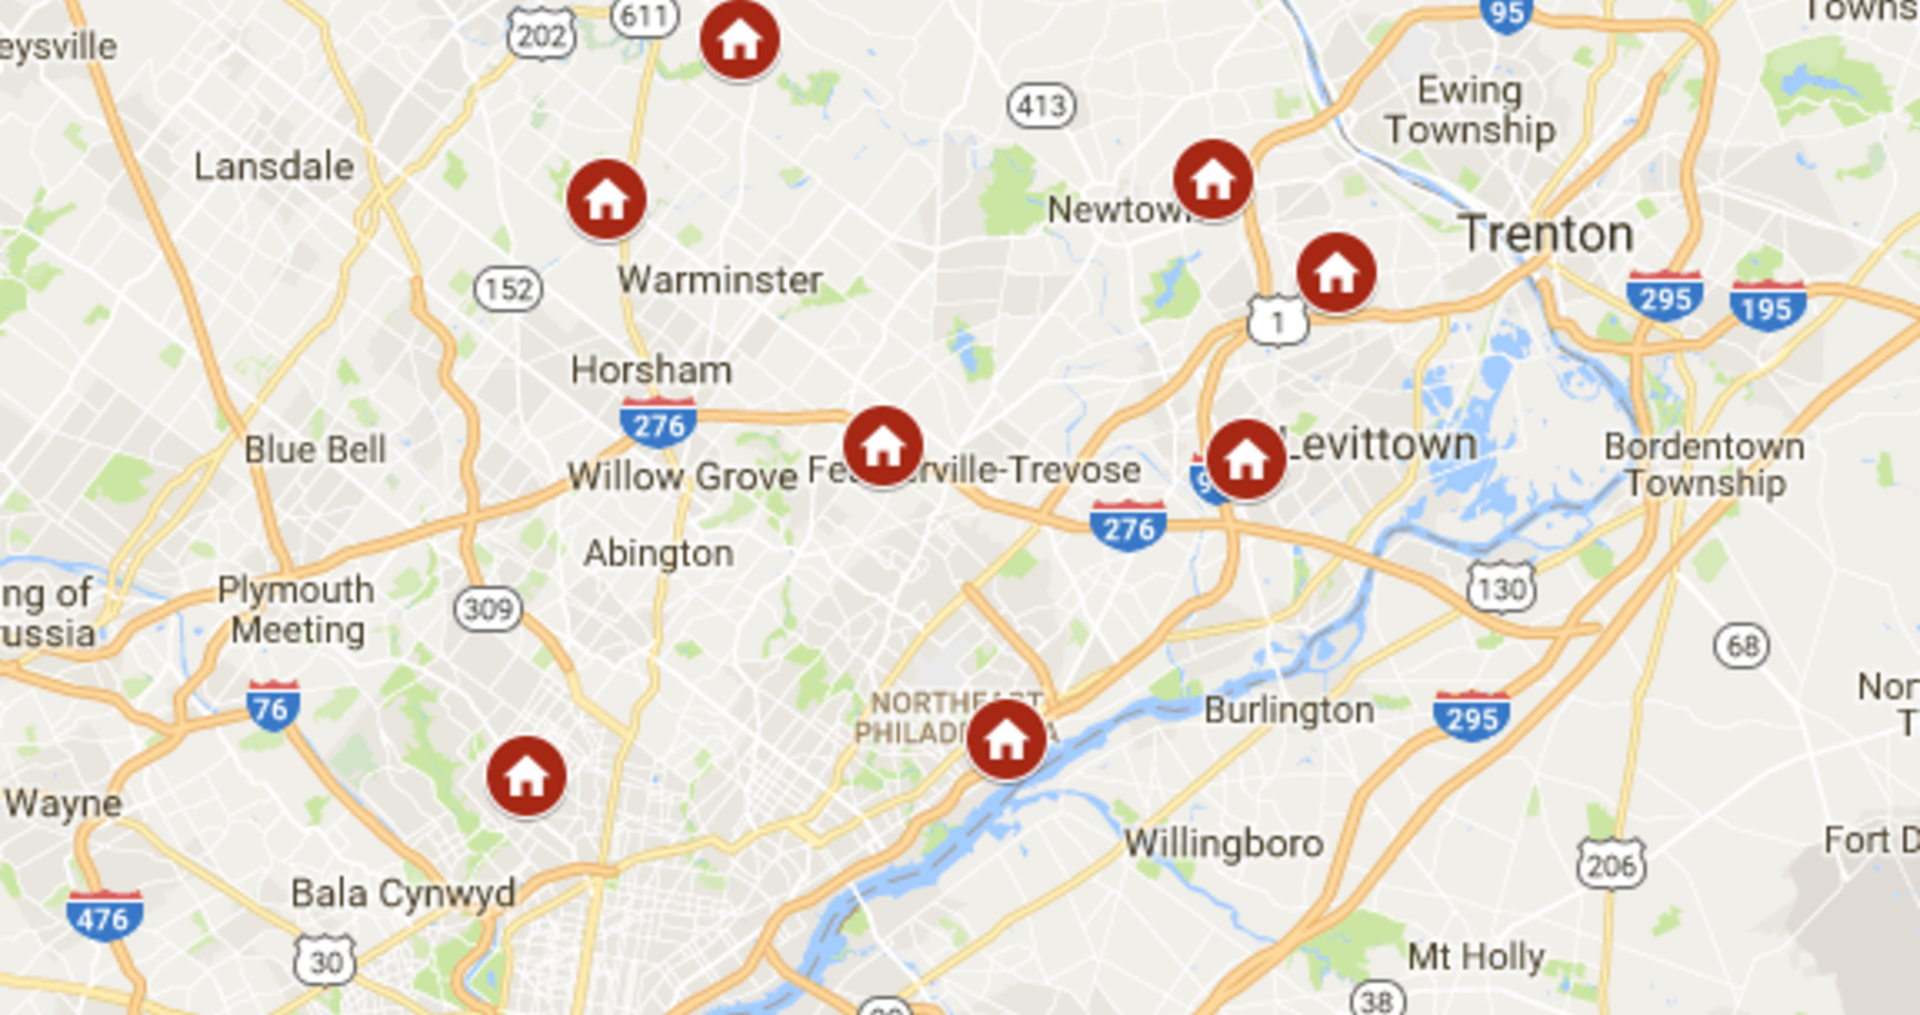 Keller Williams Newtown Open Houses June 16th – June 17th